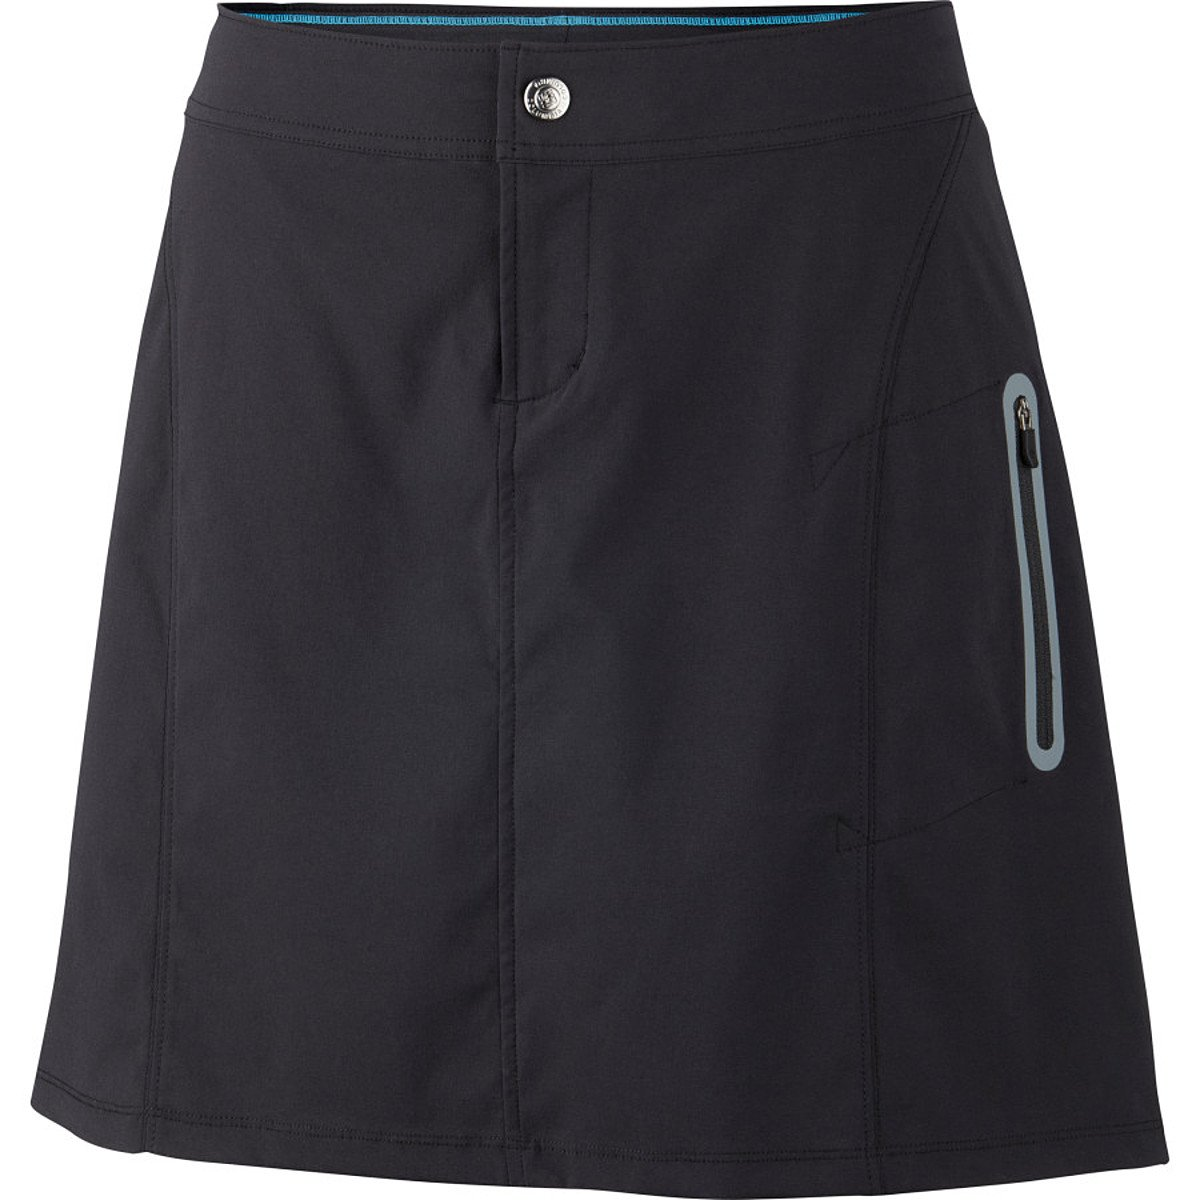 Columbia Women's Just Right Skort Skirt, black, 4